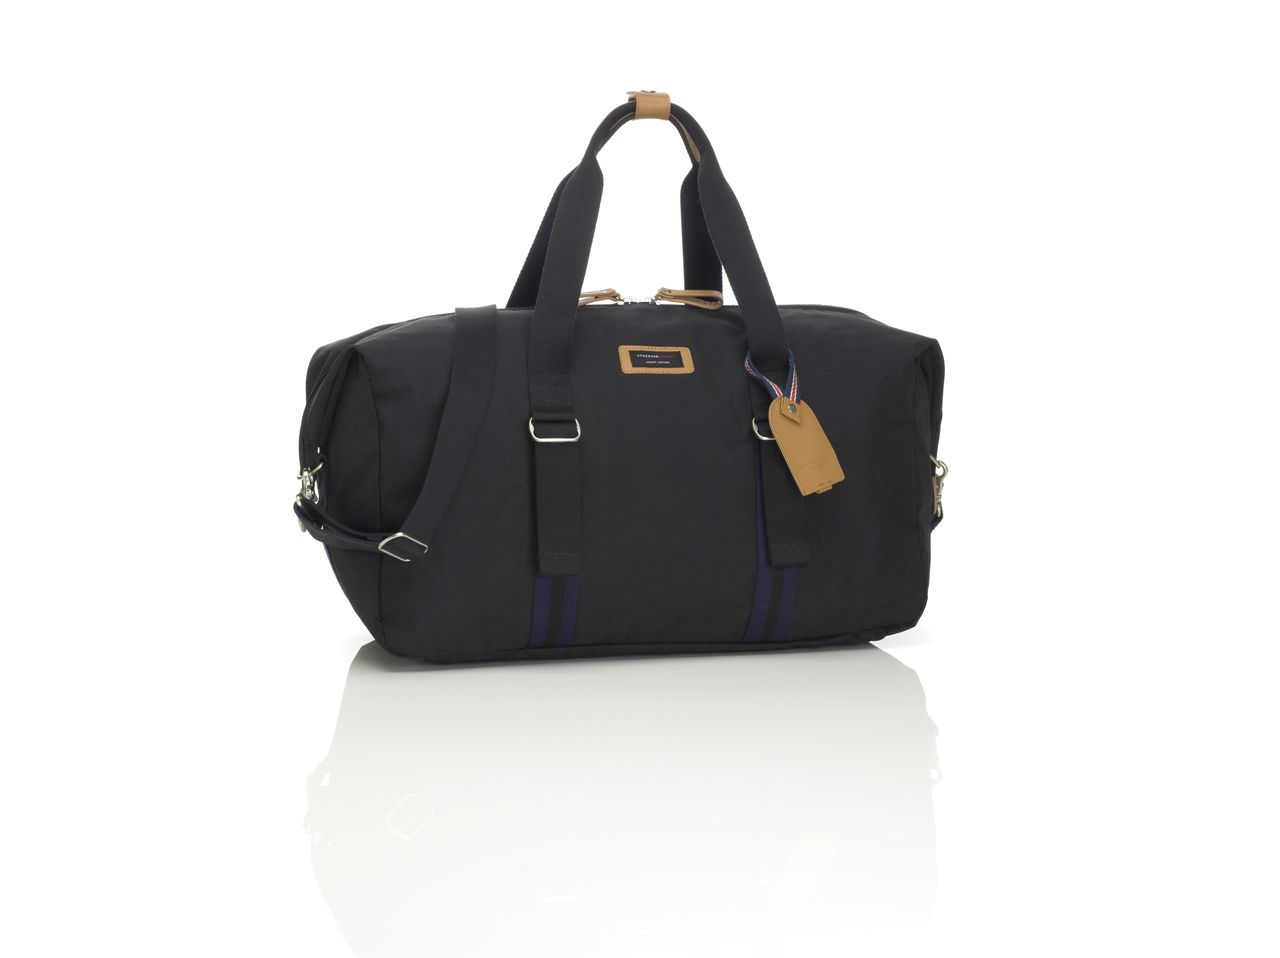 The Cabin Carry-On from Storksak in Black is a wheeled travel bag with telescopic handle and contains an incredibly functional and smart hanging organiser inside.